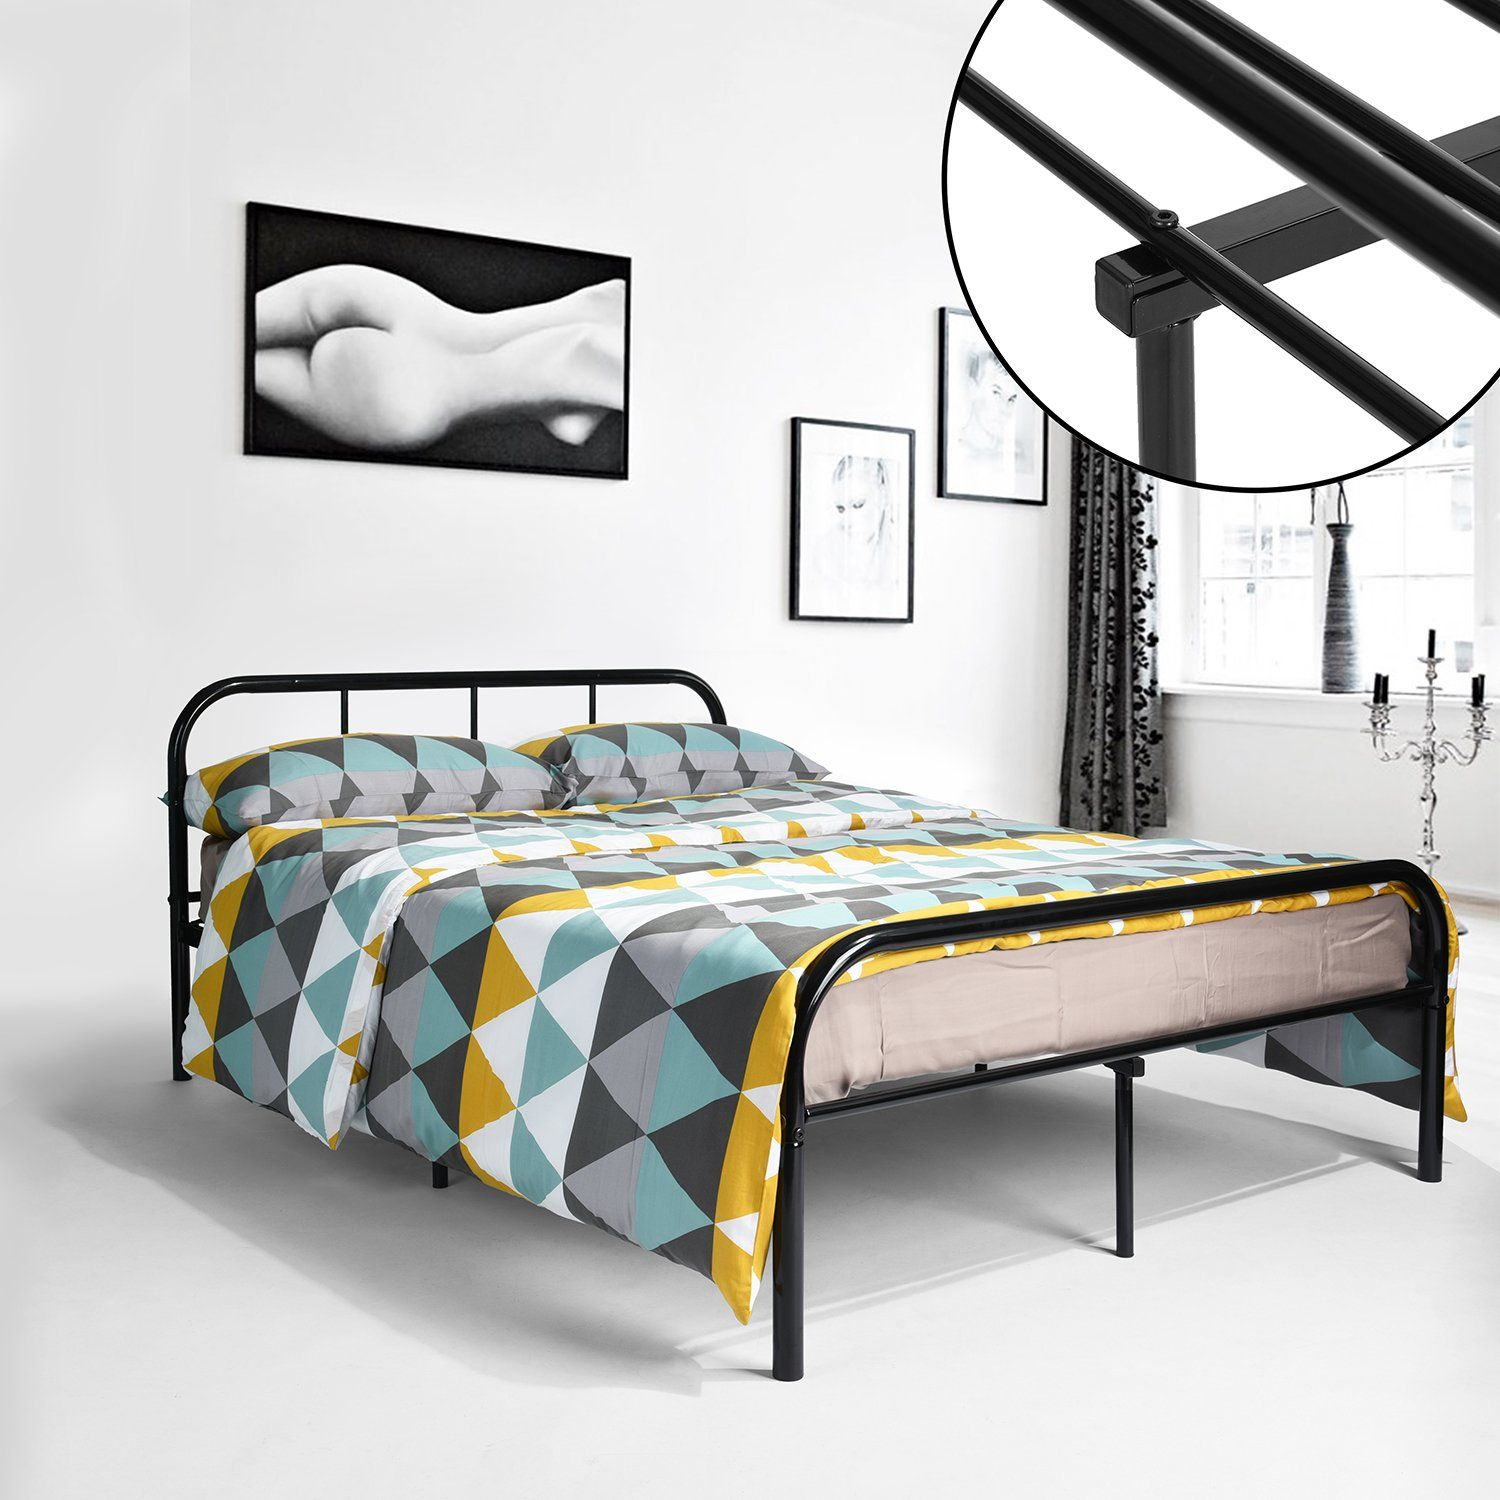 GreenForest Full Size Bed Frame with Headboard and Stable